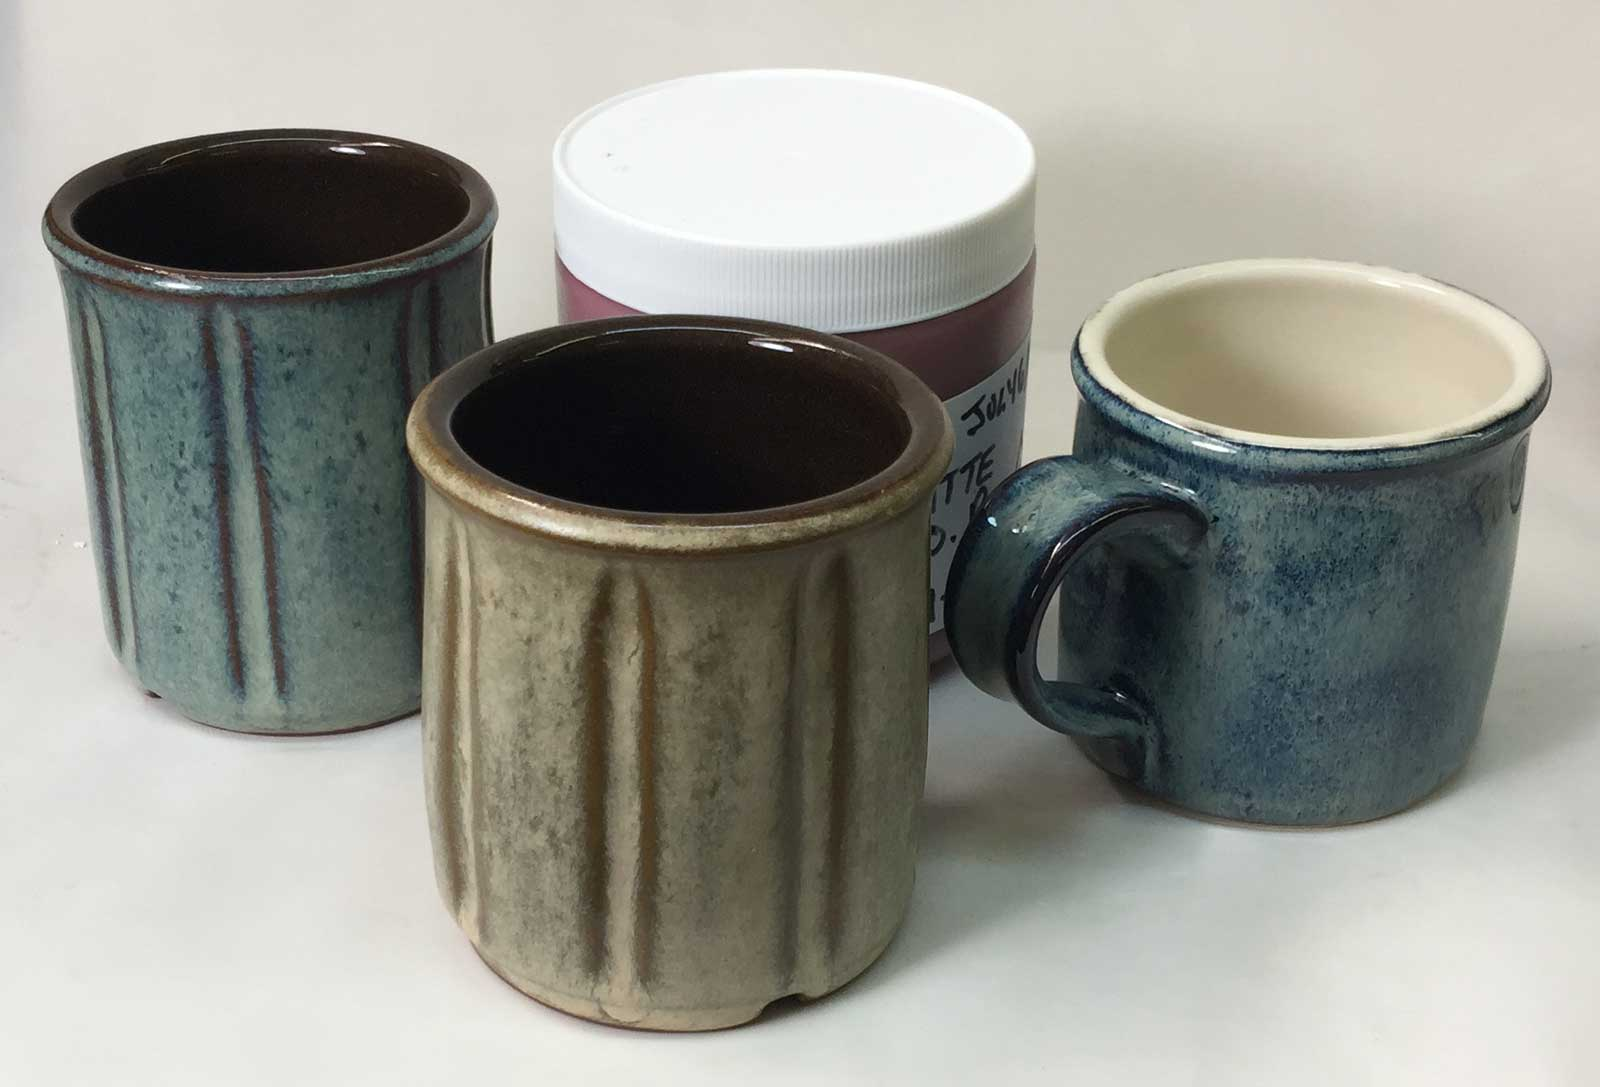 Common dipping glazes converted to jars of brushing glazes